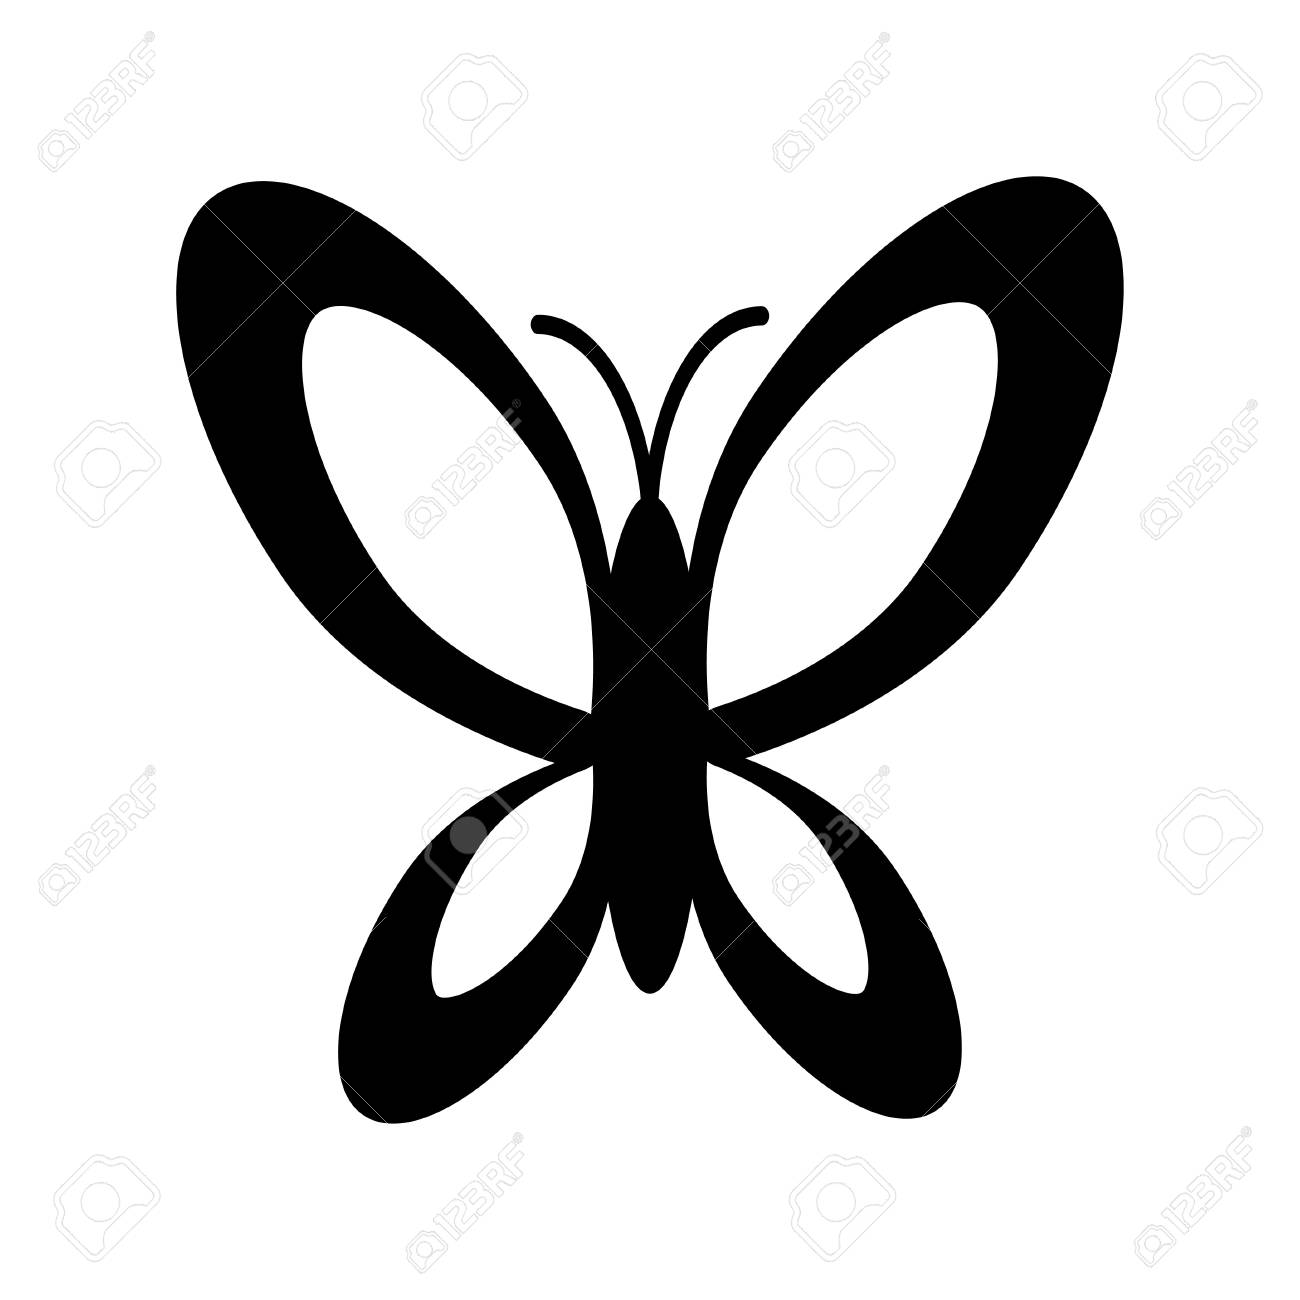 simple black and white butterfly icon royalty free cliparts vectors rh 123rf com Bottle Cap Clip Art Black and White Simple Bottle Cap Clip Art Black and White Simple